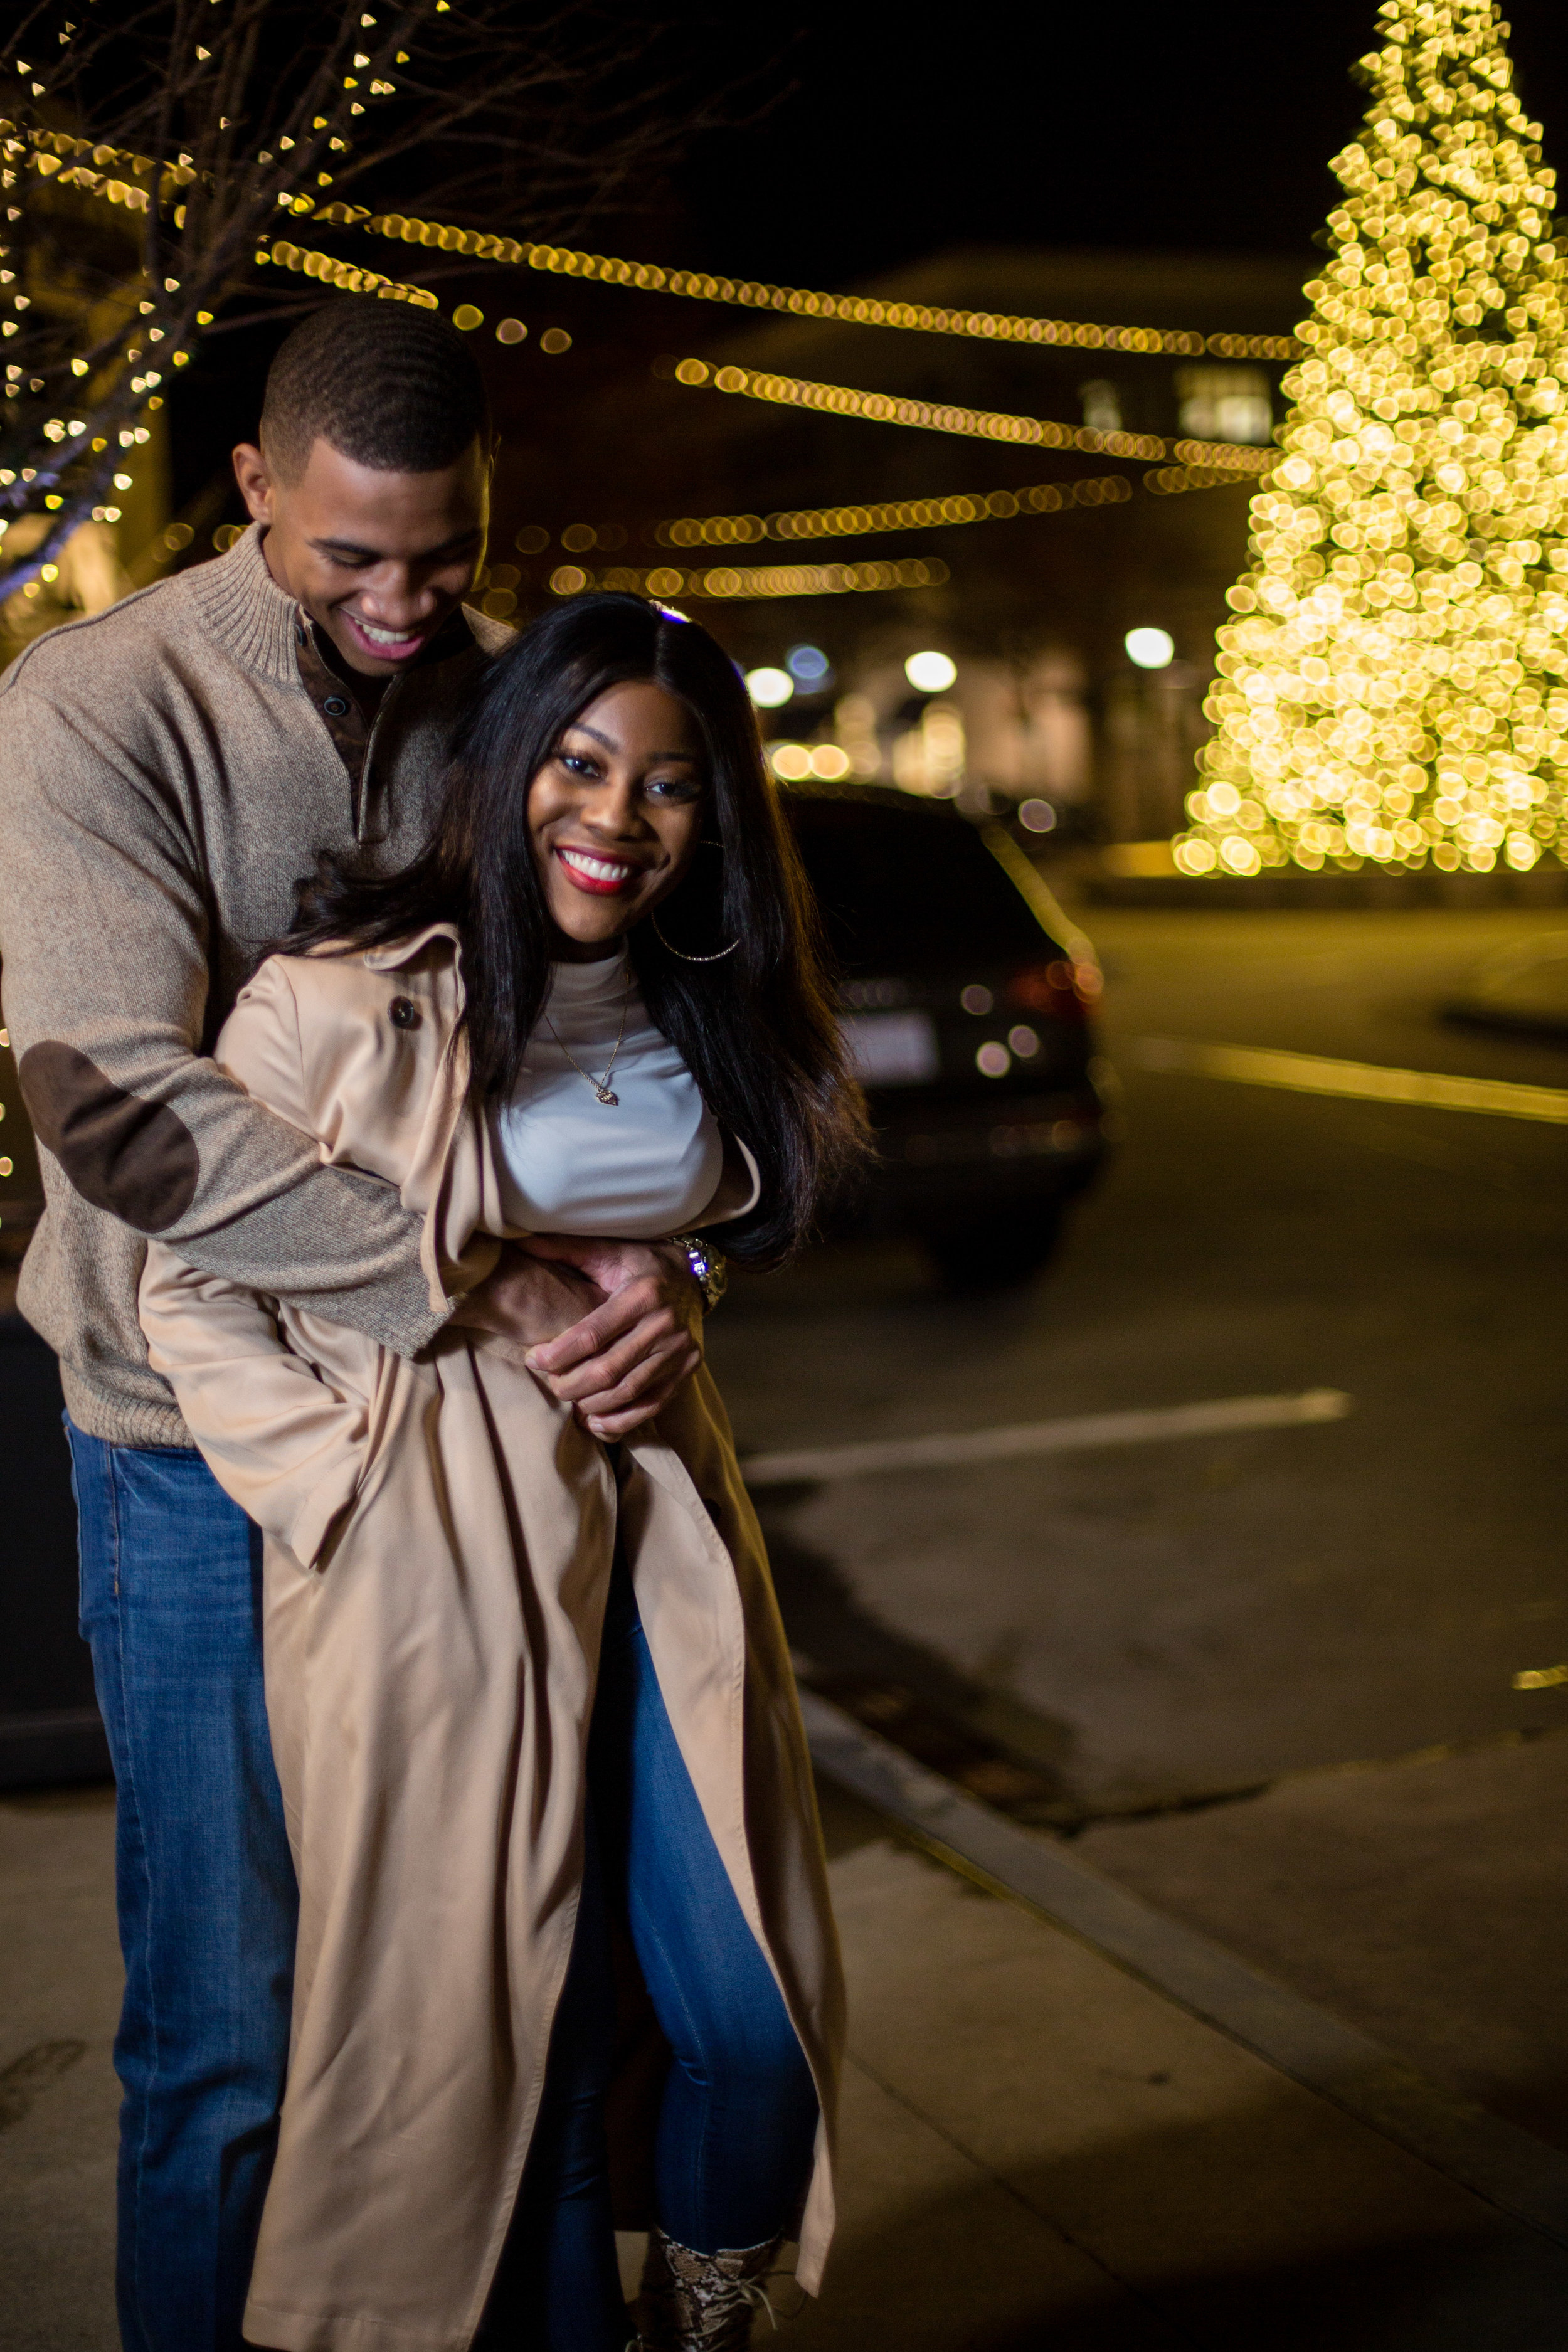 North Hills Raleigh Date Night Photoshoot | Cleveland + Leasia | Date Night Mini Session | Raleigh NC Photographer | Bryant Tyson Photography | www.memoriesbybryant.com